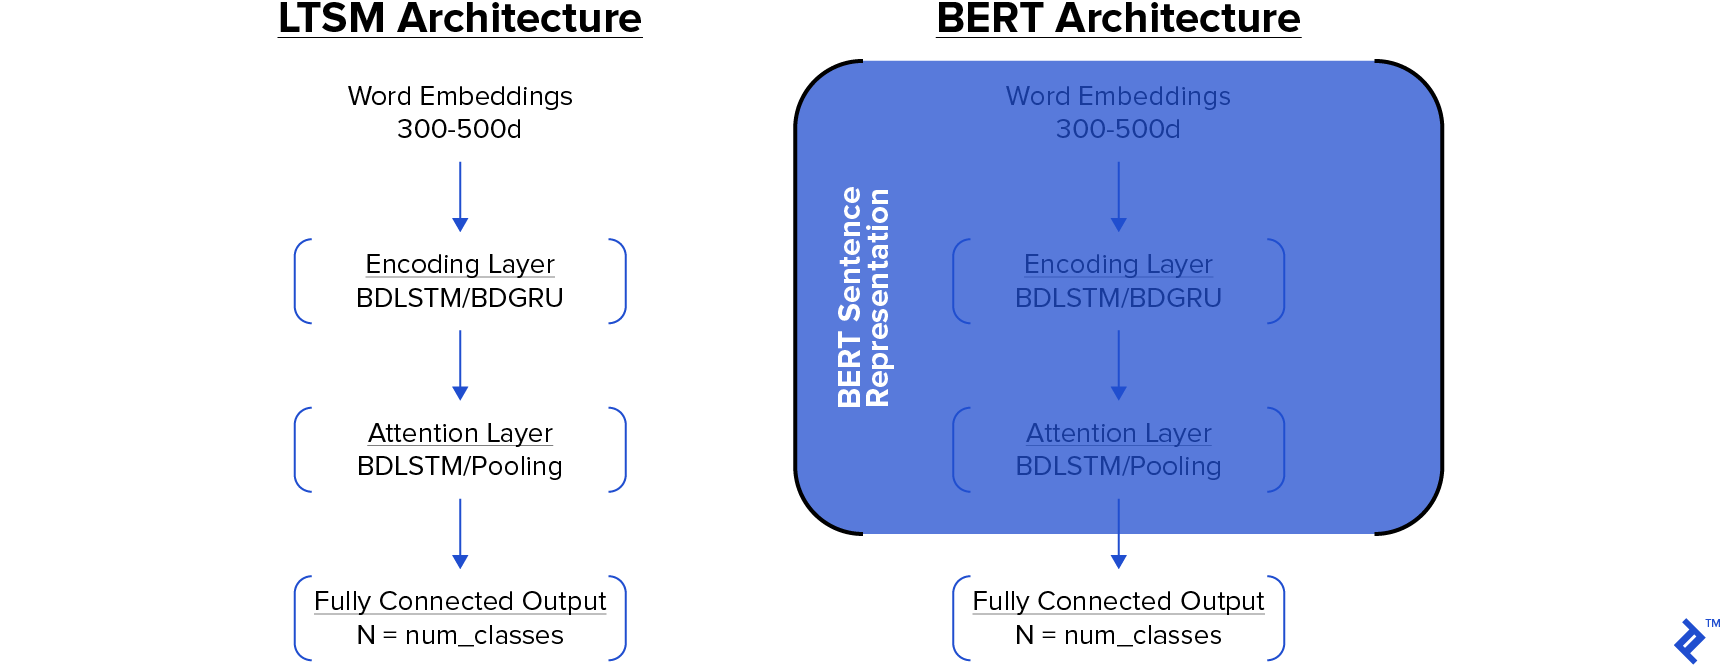 BERT vs LSTM illustrated